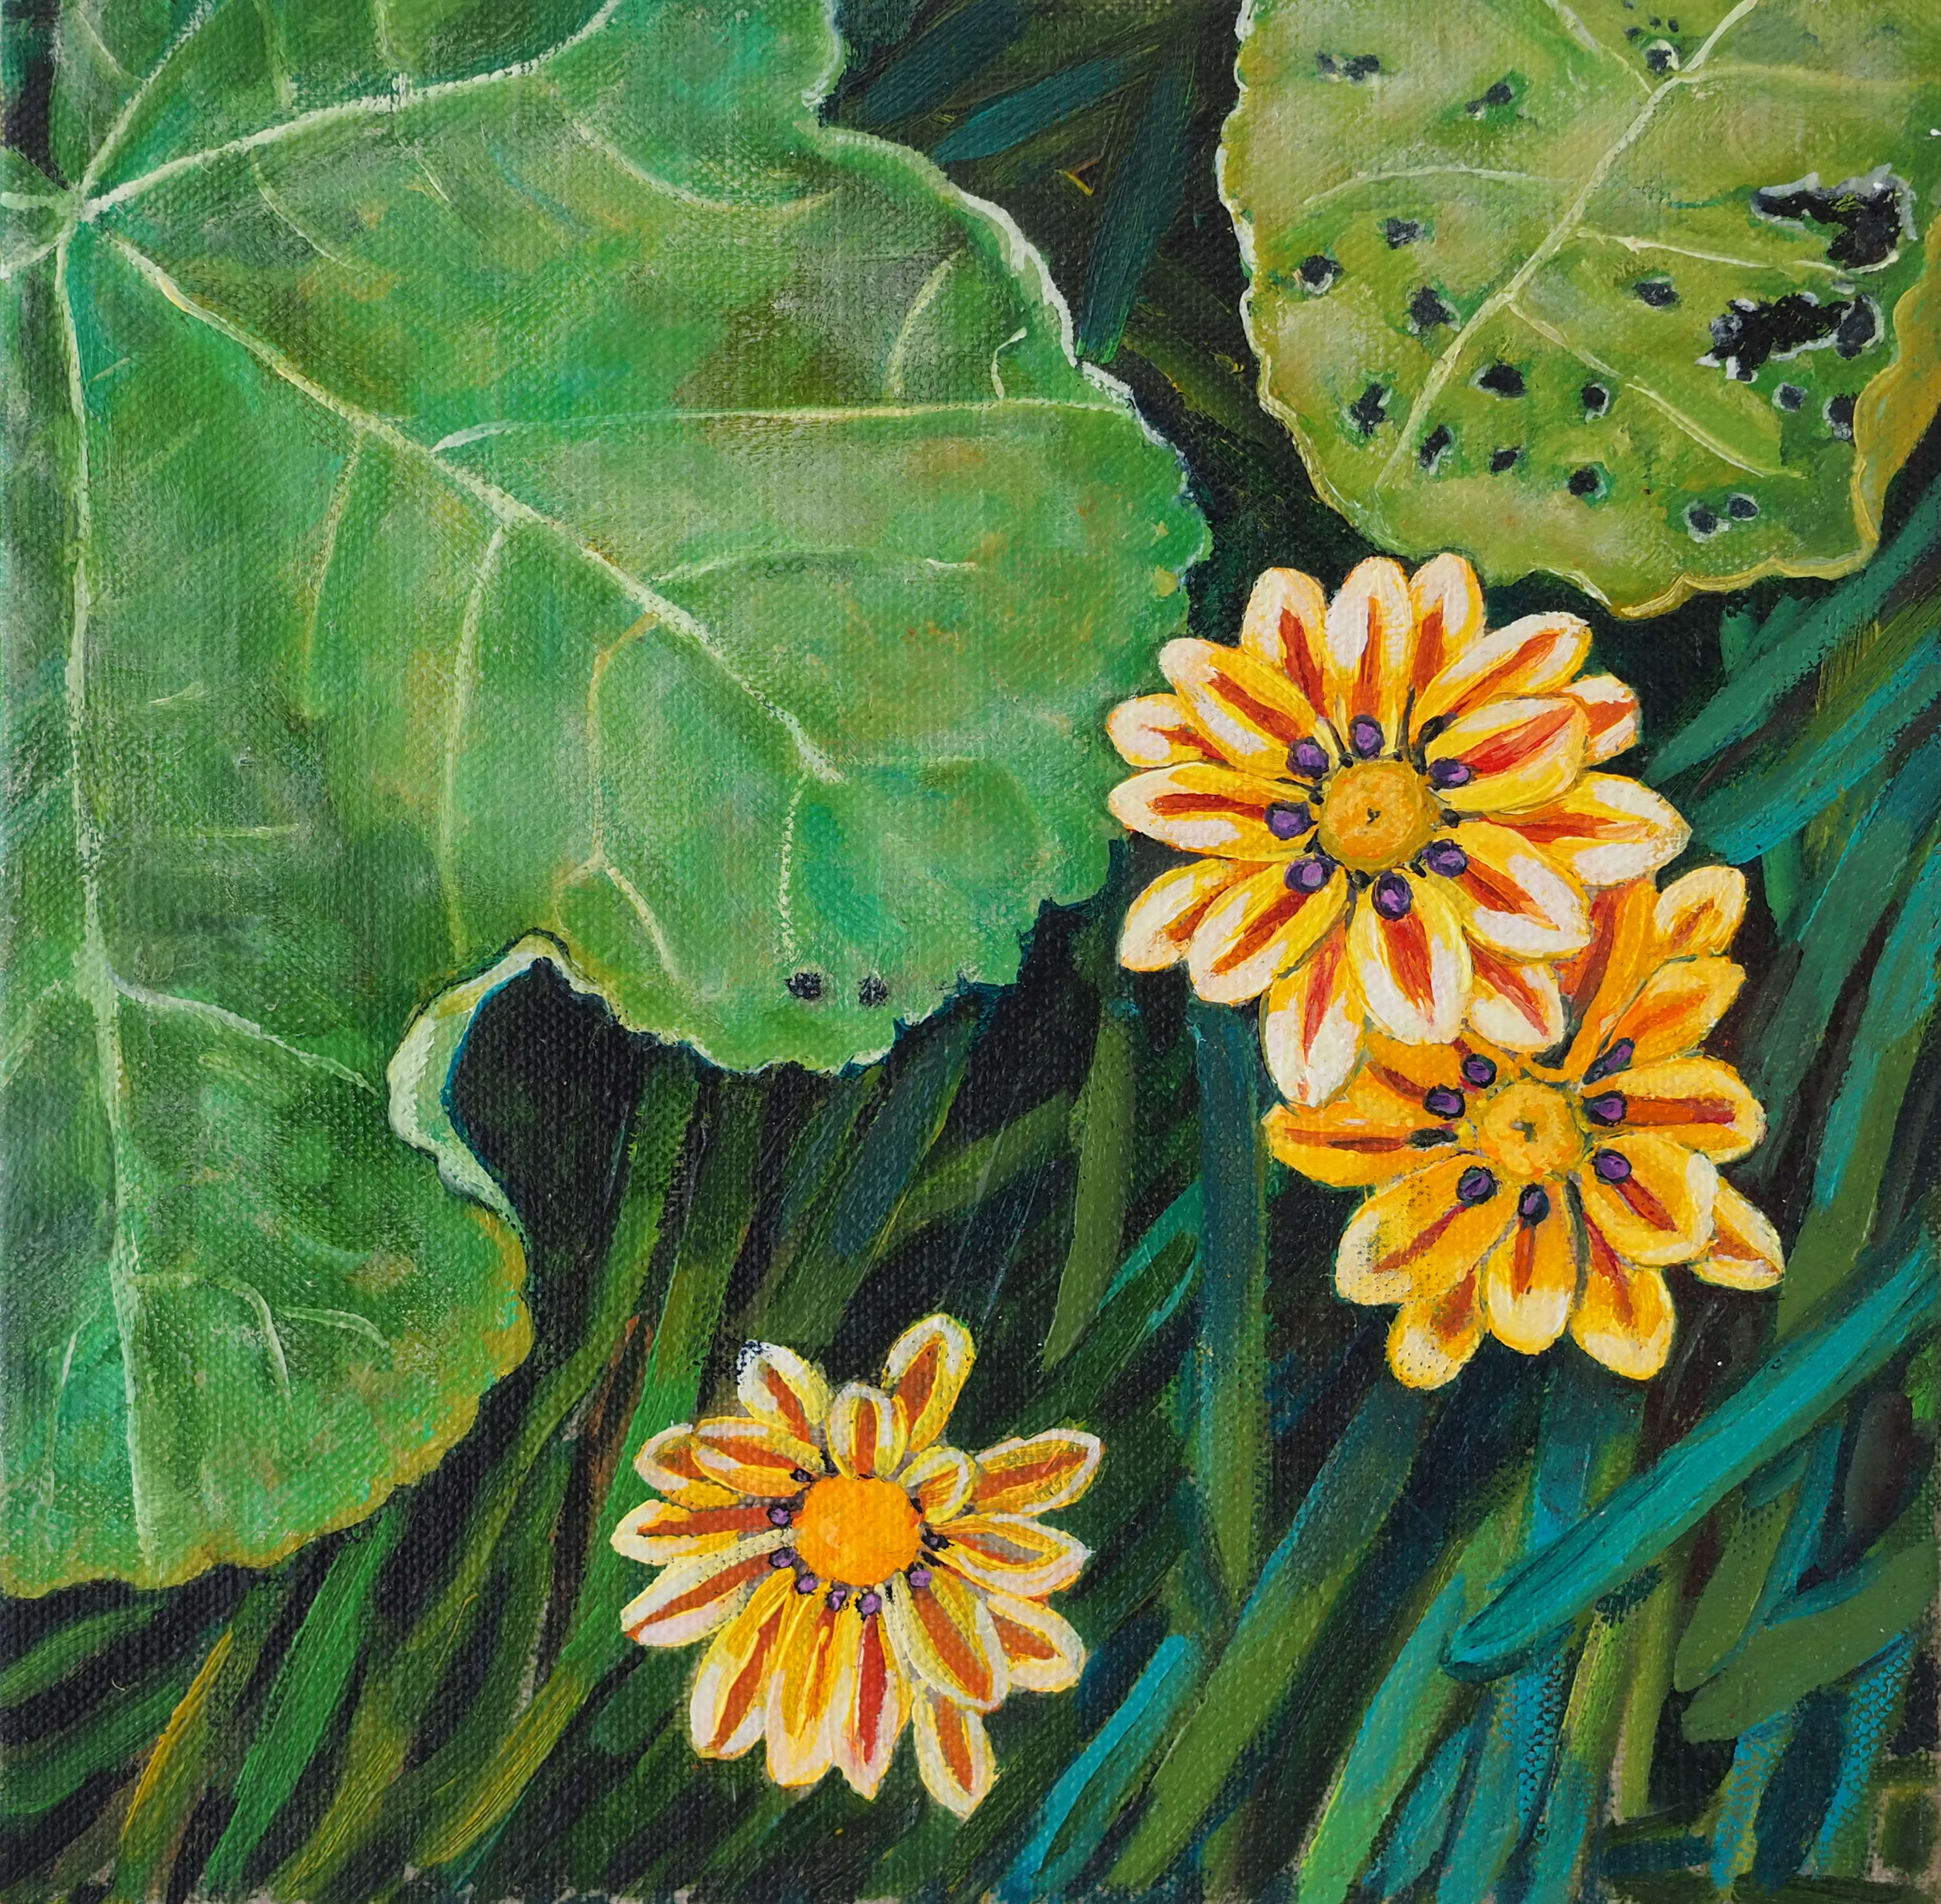 Gazania with Holly Hock leaves 20x20cm oil on linen board $250